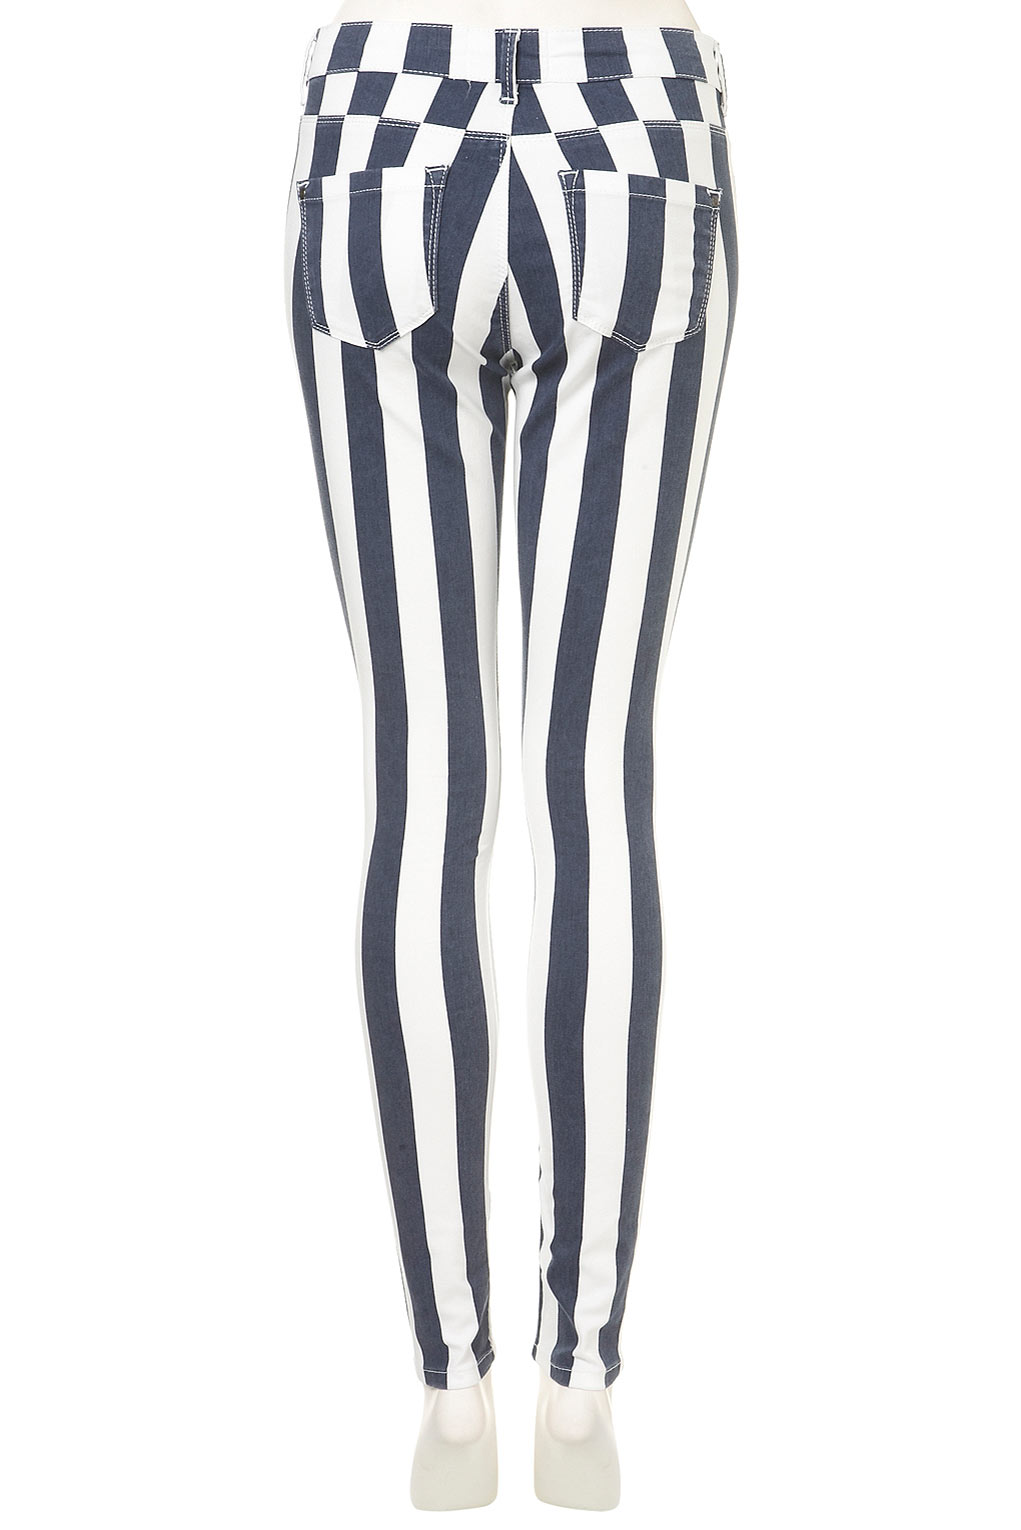 Red and white striped pants, bow tie, and hat included. Leg Avenue Women's Nylon Striped Tights, Black/Royal Blue, One Size. by Leg Avenue. $ - $ $ 0 $ 63 97 Add-on Item. FREE Shipping on eligible orders. 4 out of 5 stars Jacqui's Unisex Baby Red and White Striped Leggings 6 Sizes.